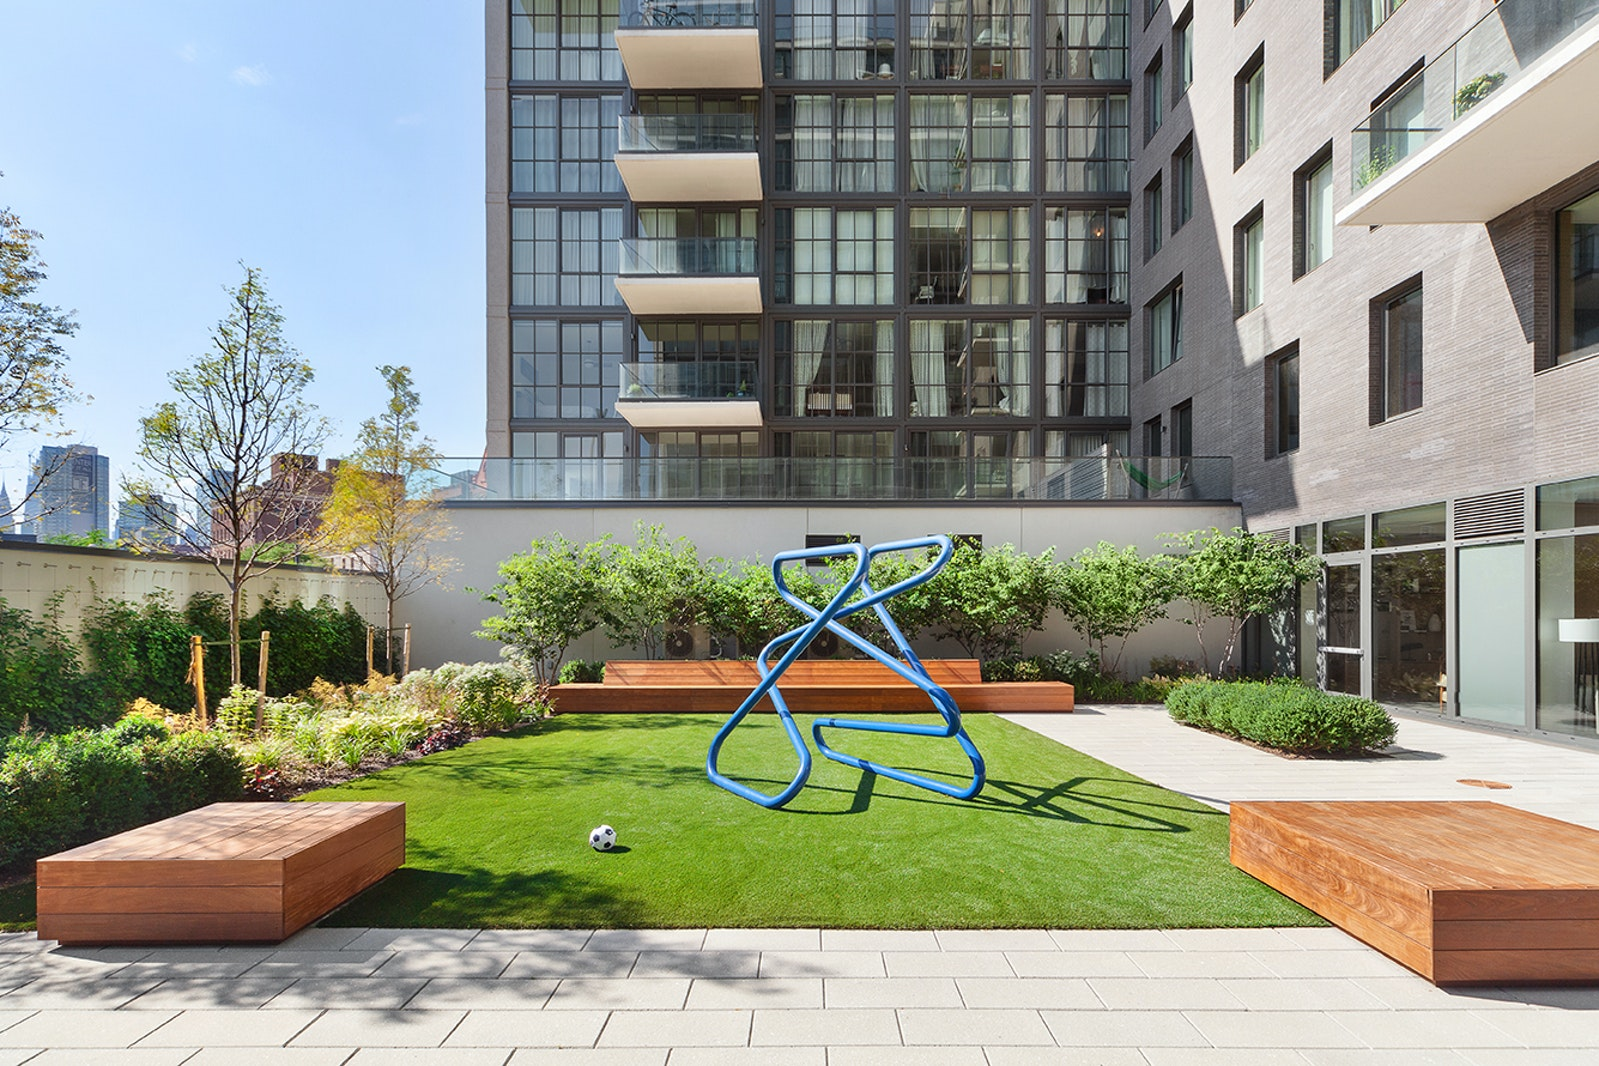 2218 Jackson Avenue 716, Long Island City, Queens, NY, 11101, $1,295,000, Property For Sale, Halstead Real Estate, Photo 14